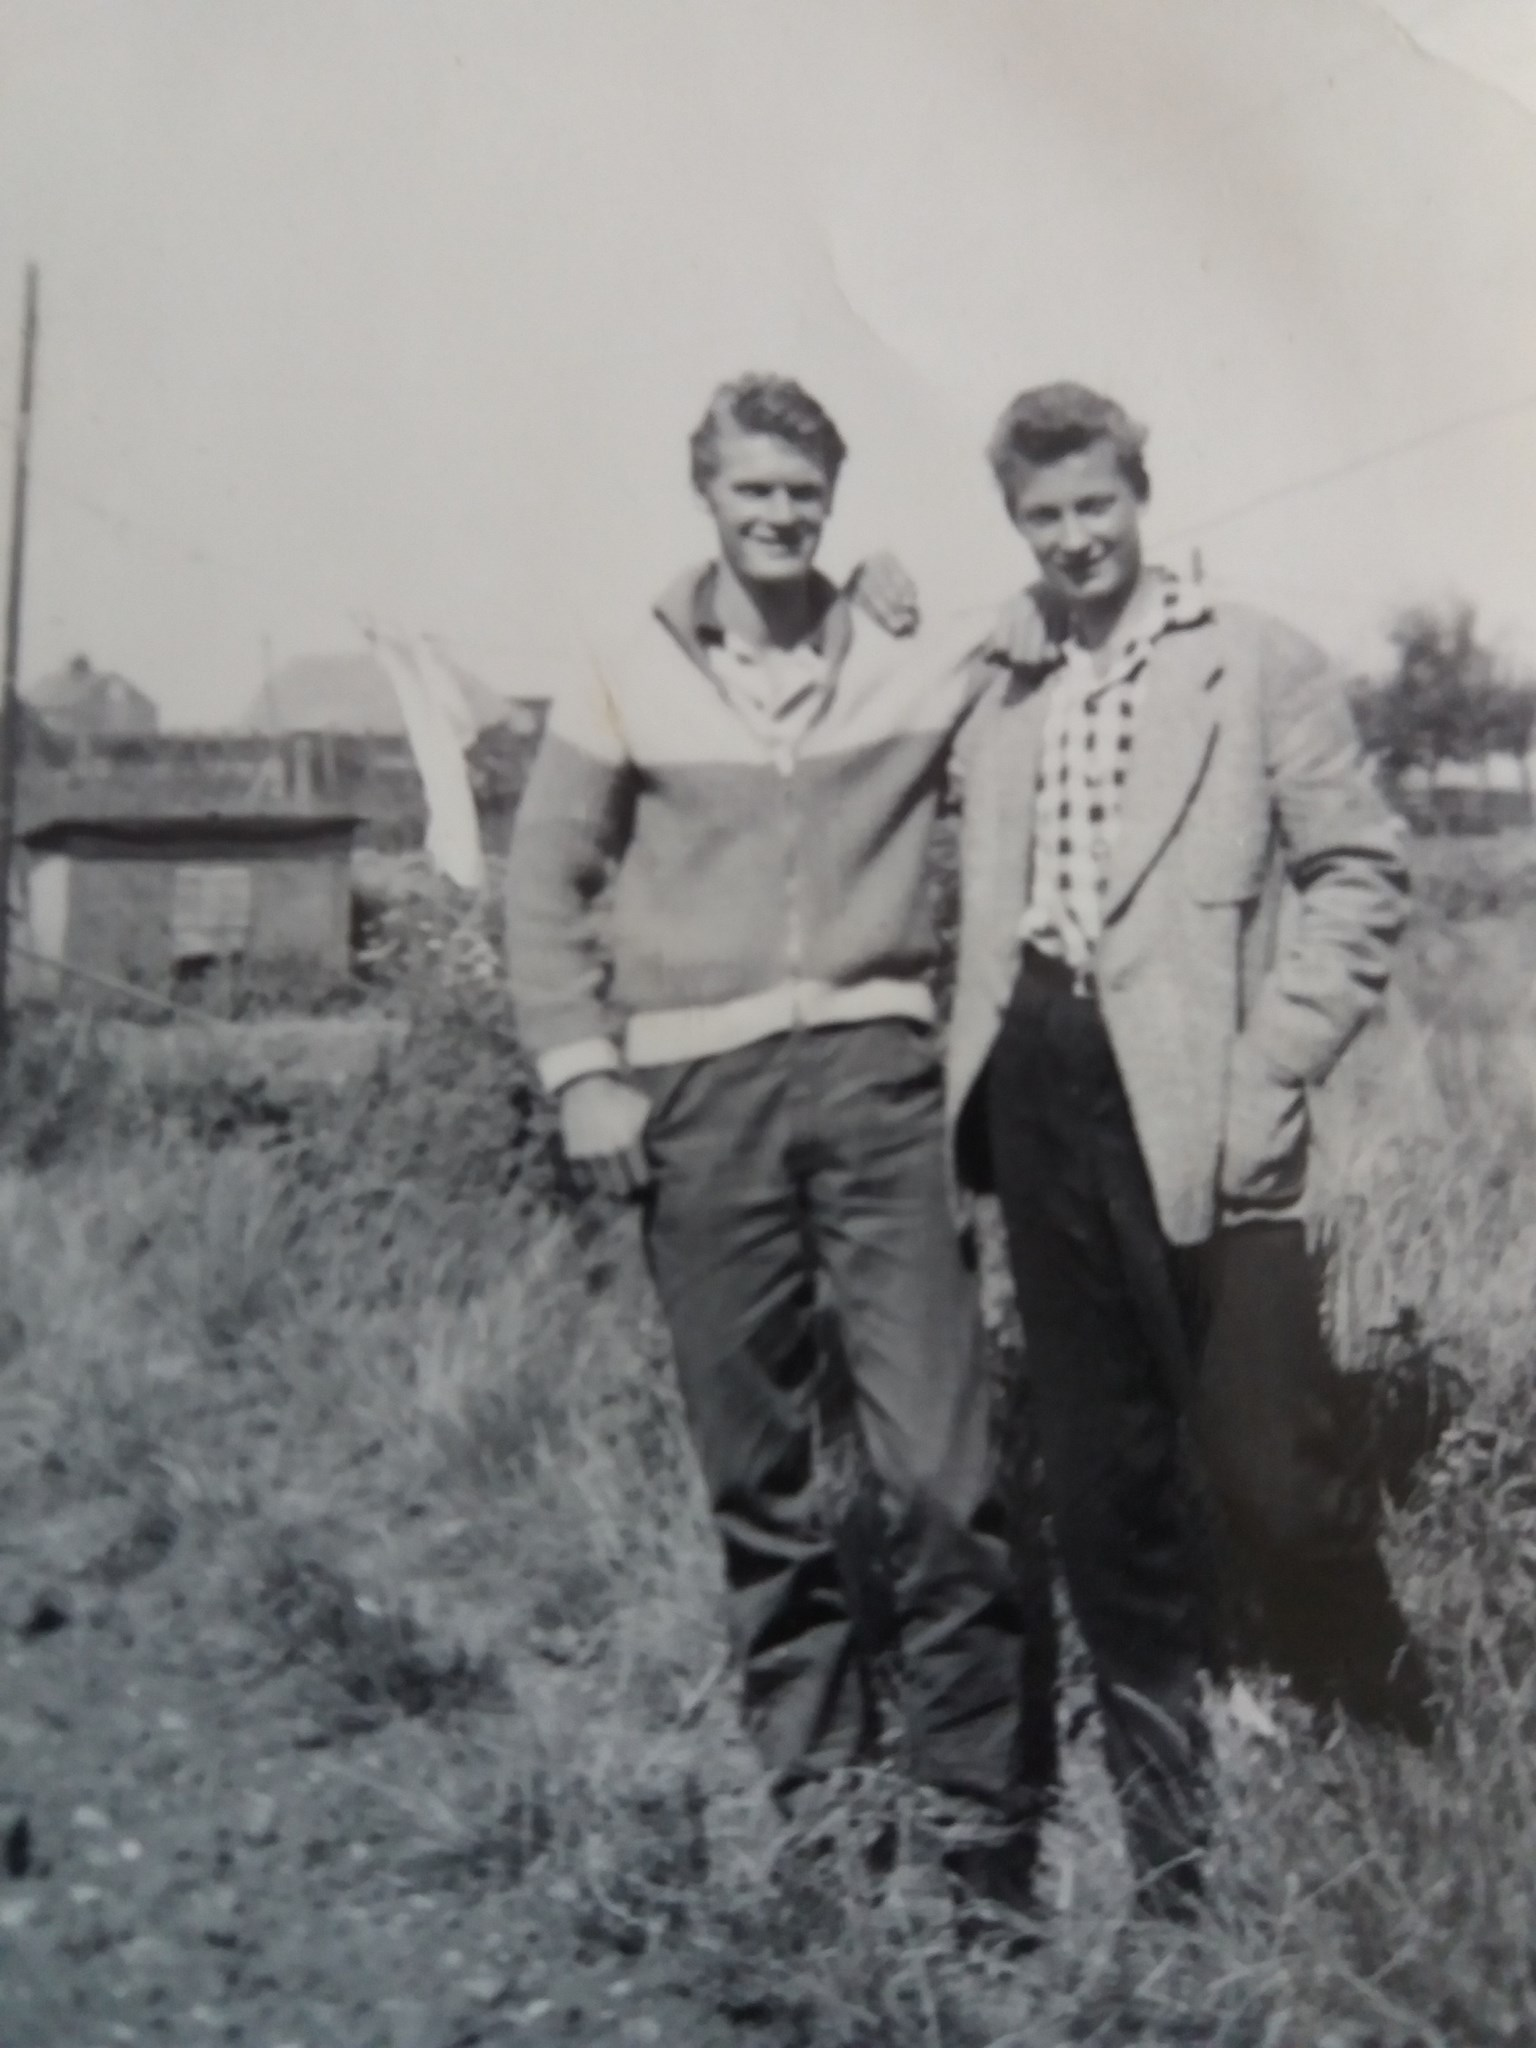 Bill with brother John at Lee-on-Solenf